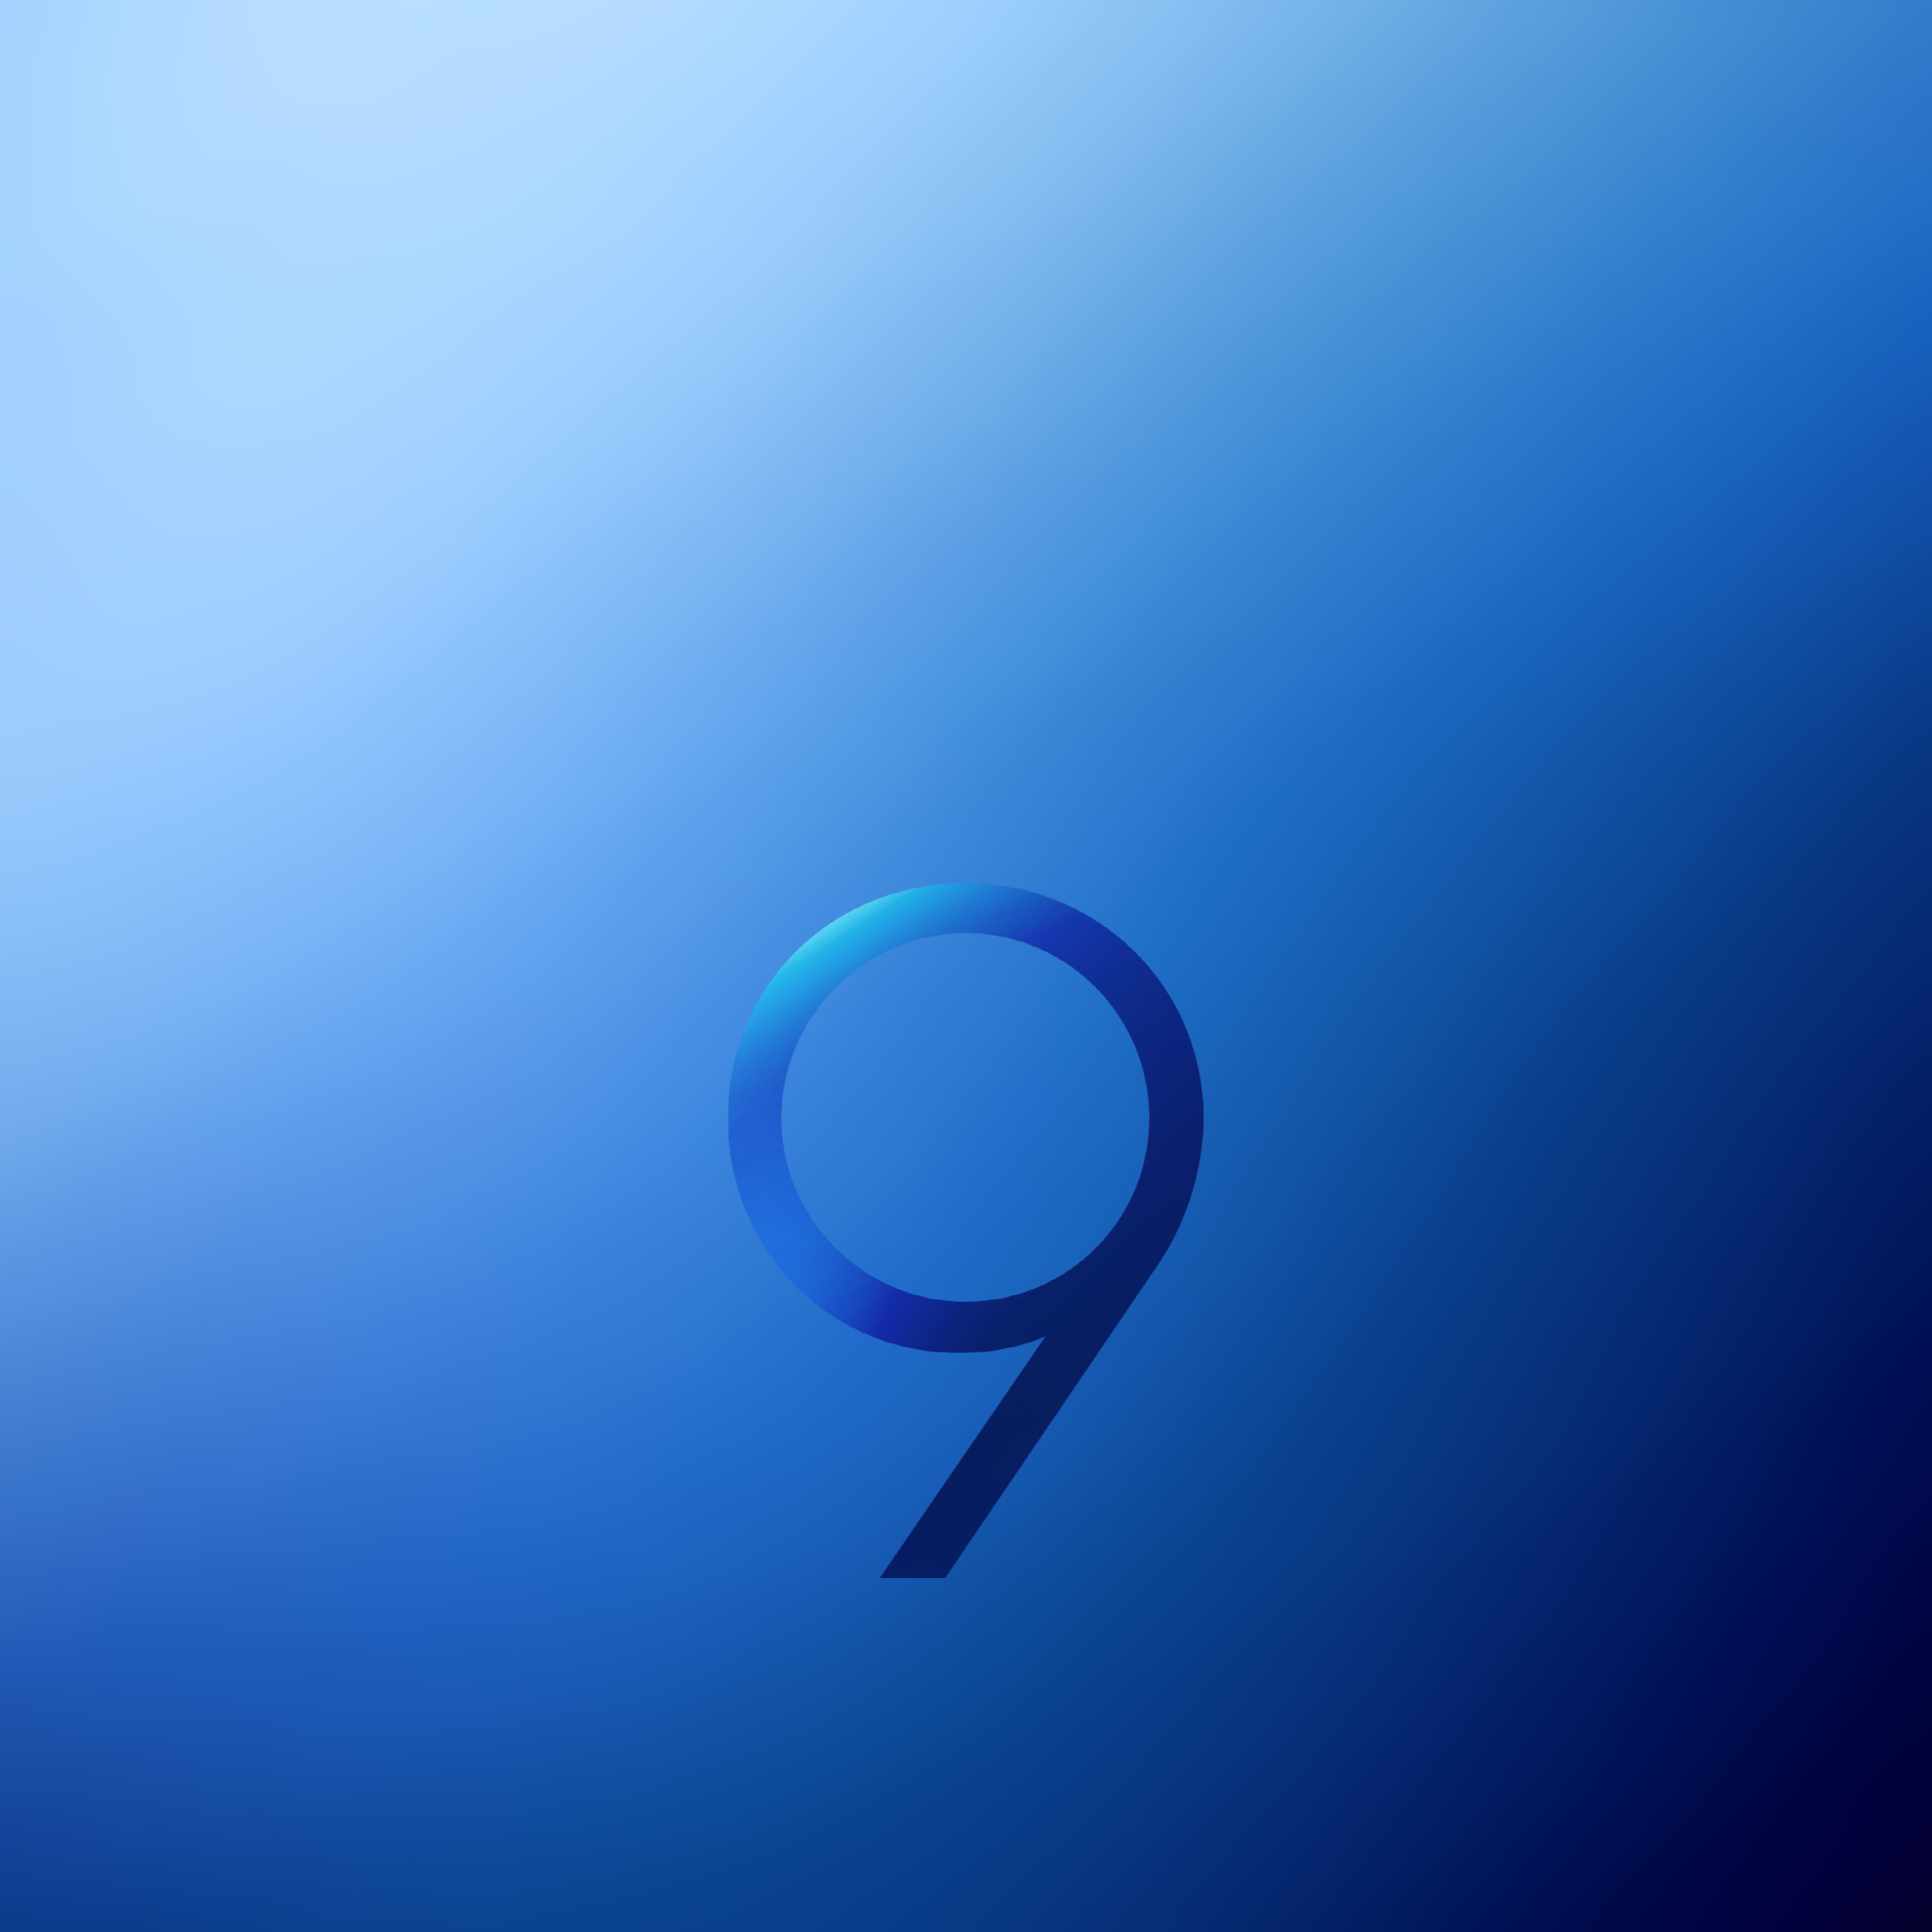 Download Samsung Galaxy S9 Wallpaper Sammobile